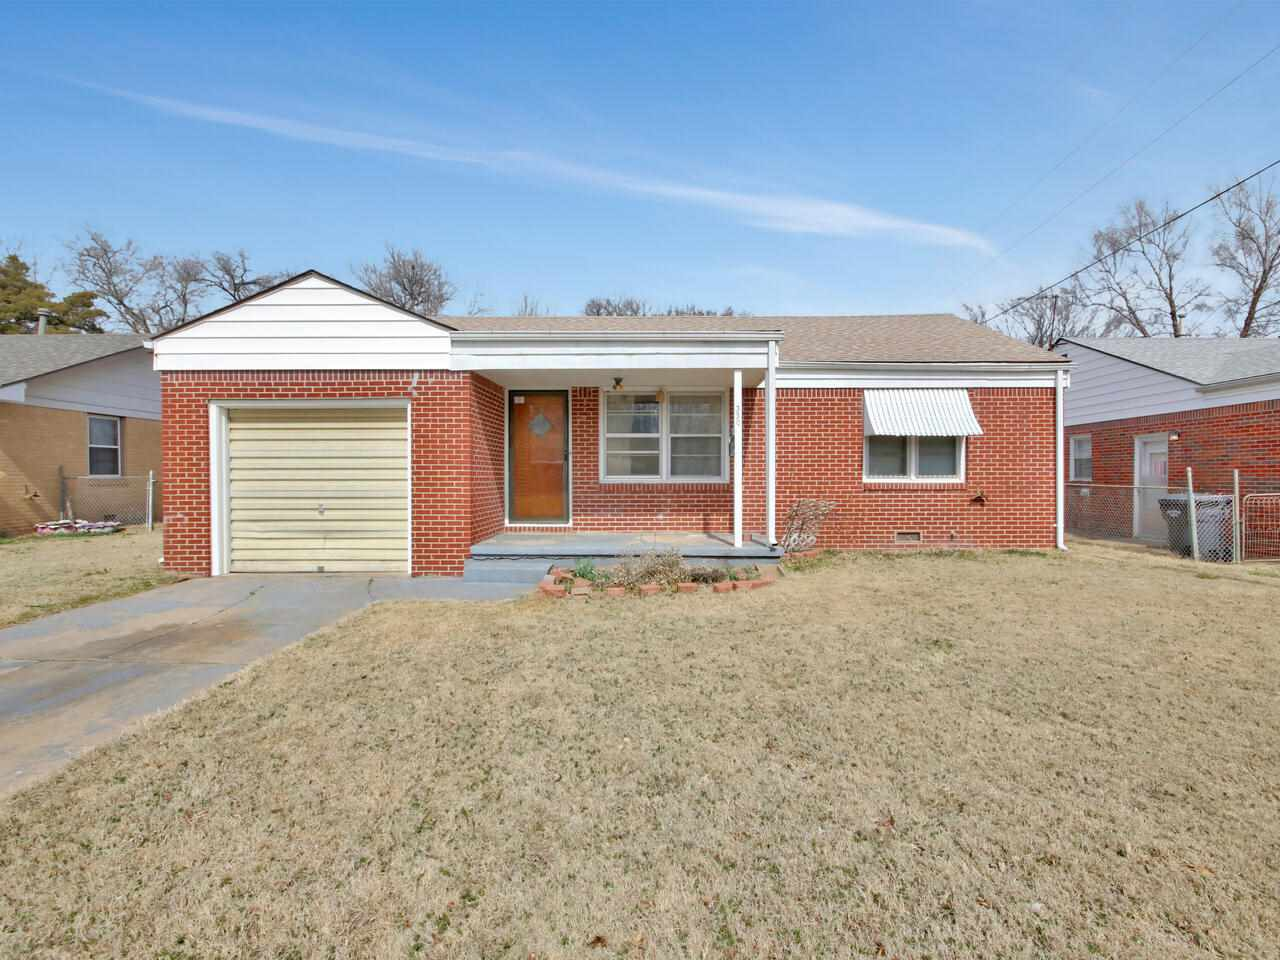 Full Brick home with 2 Bedrooms, 1 bath with Central heat and A/C.  Fenced yard plus a garden spot a